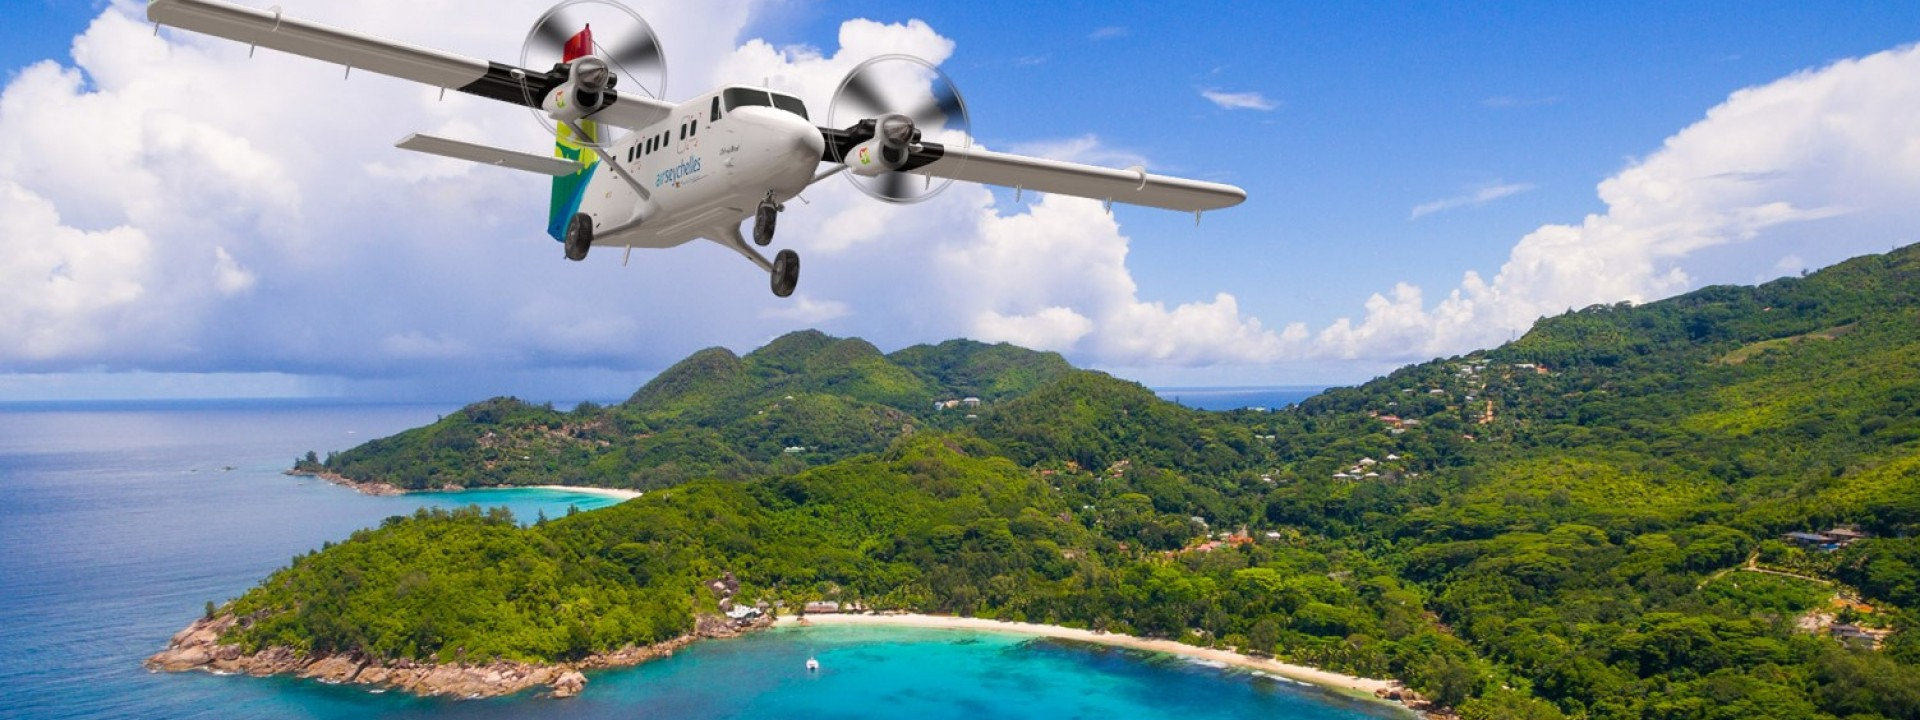 Air Seychelles scenic flights to nowhere around Mahé